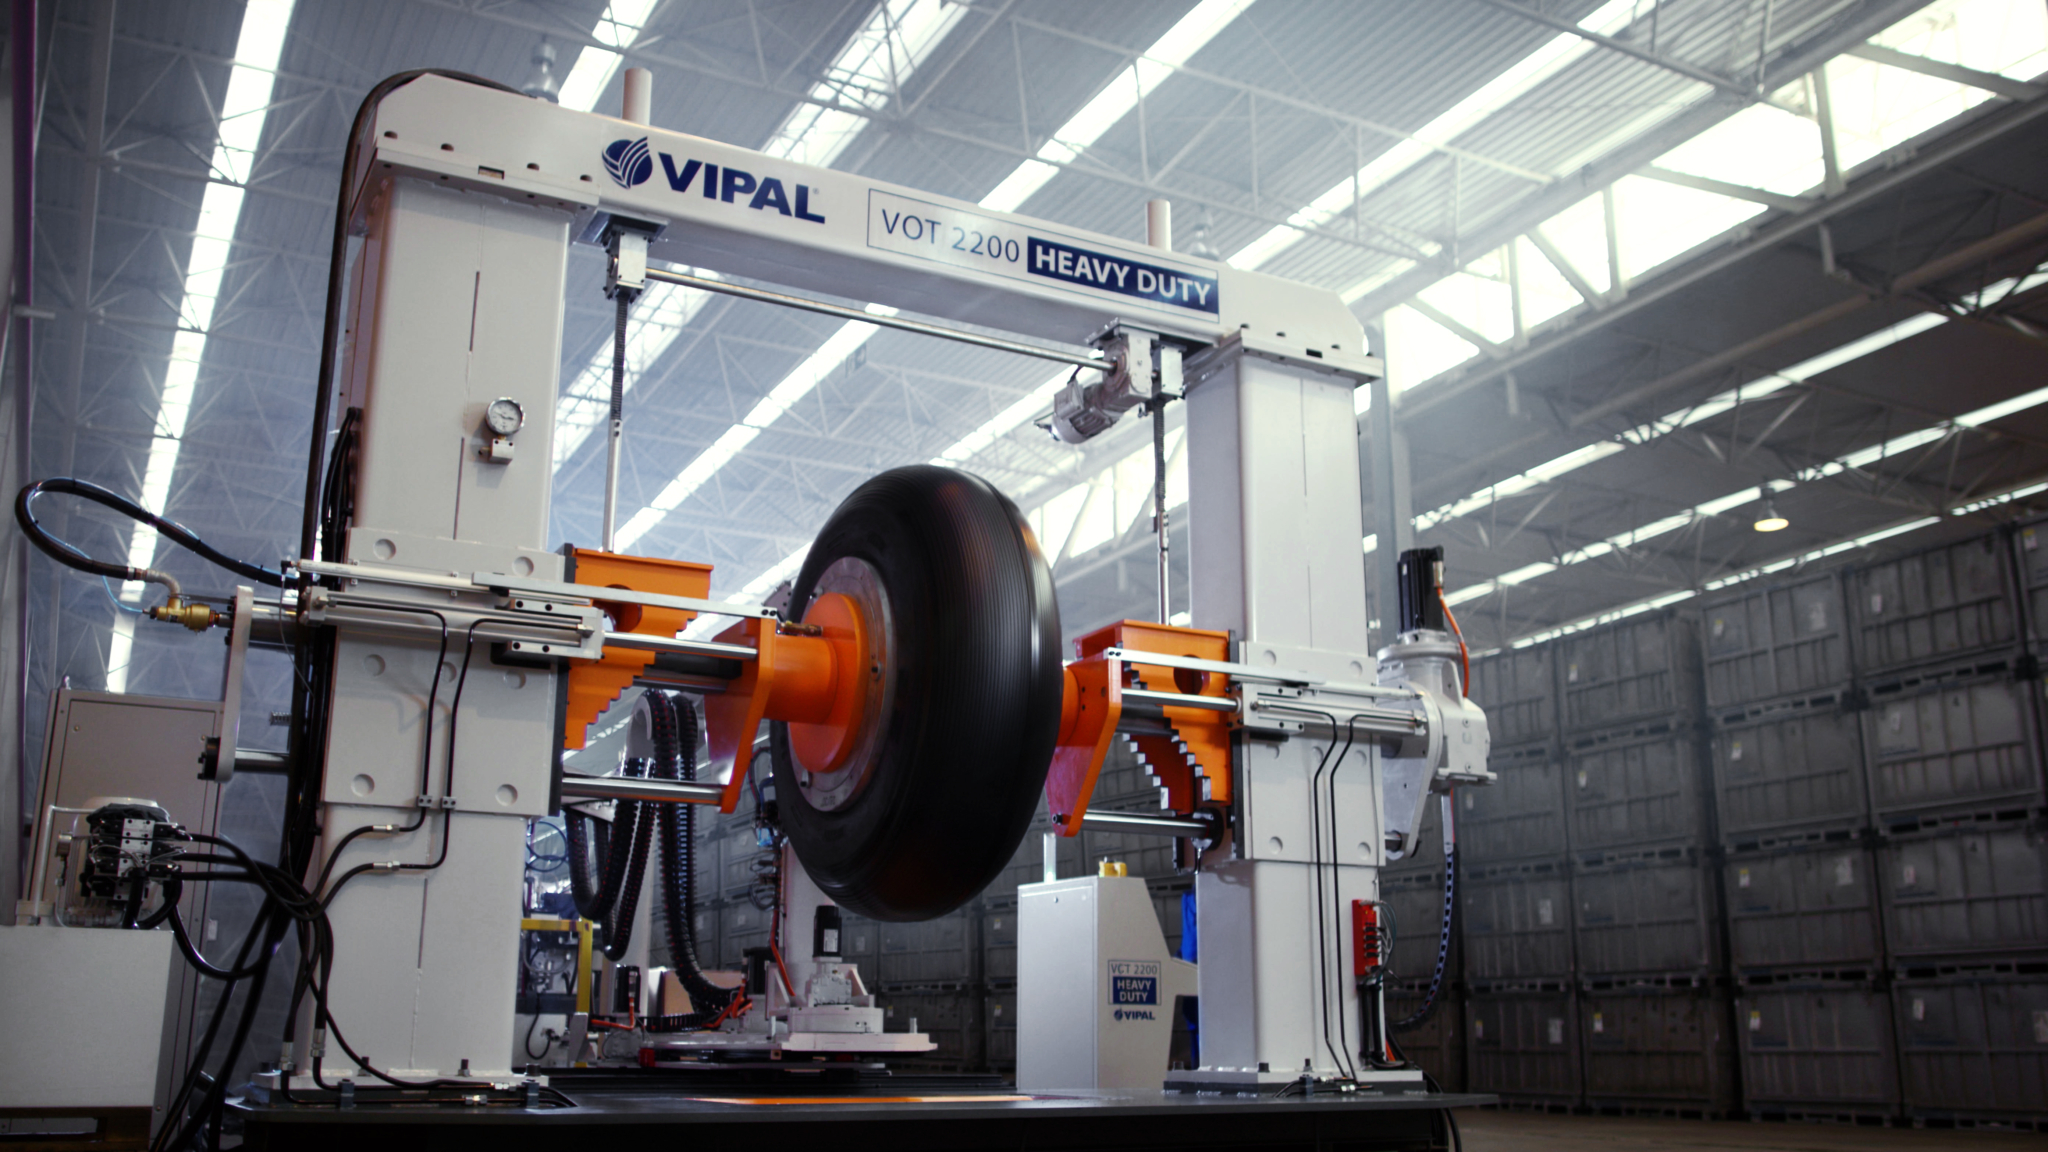 Vipal Machinery aims to expand internationally